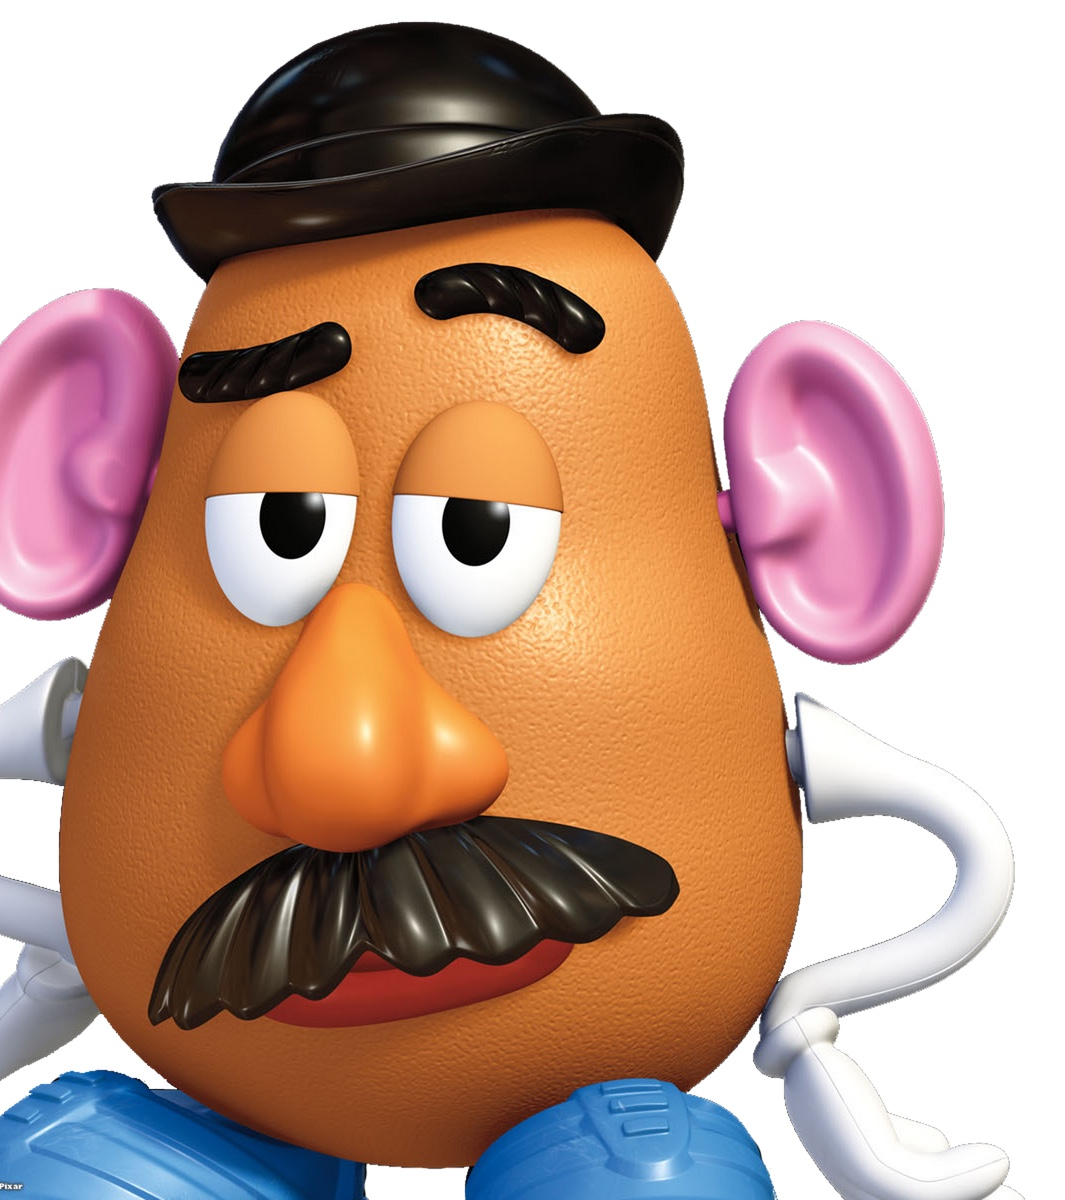 Mr Potato Head Pixar Wiki Fandom